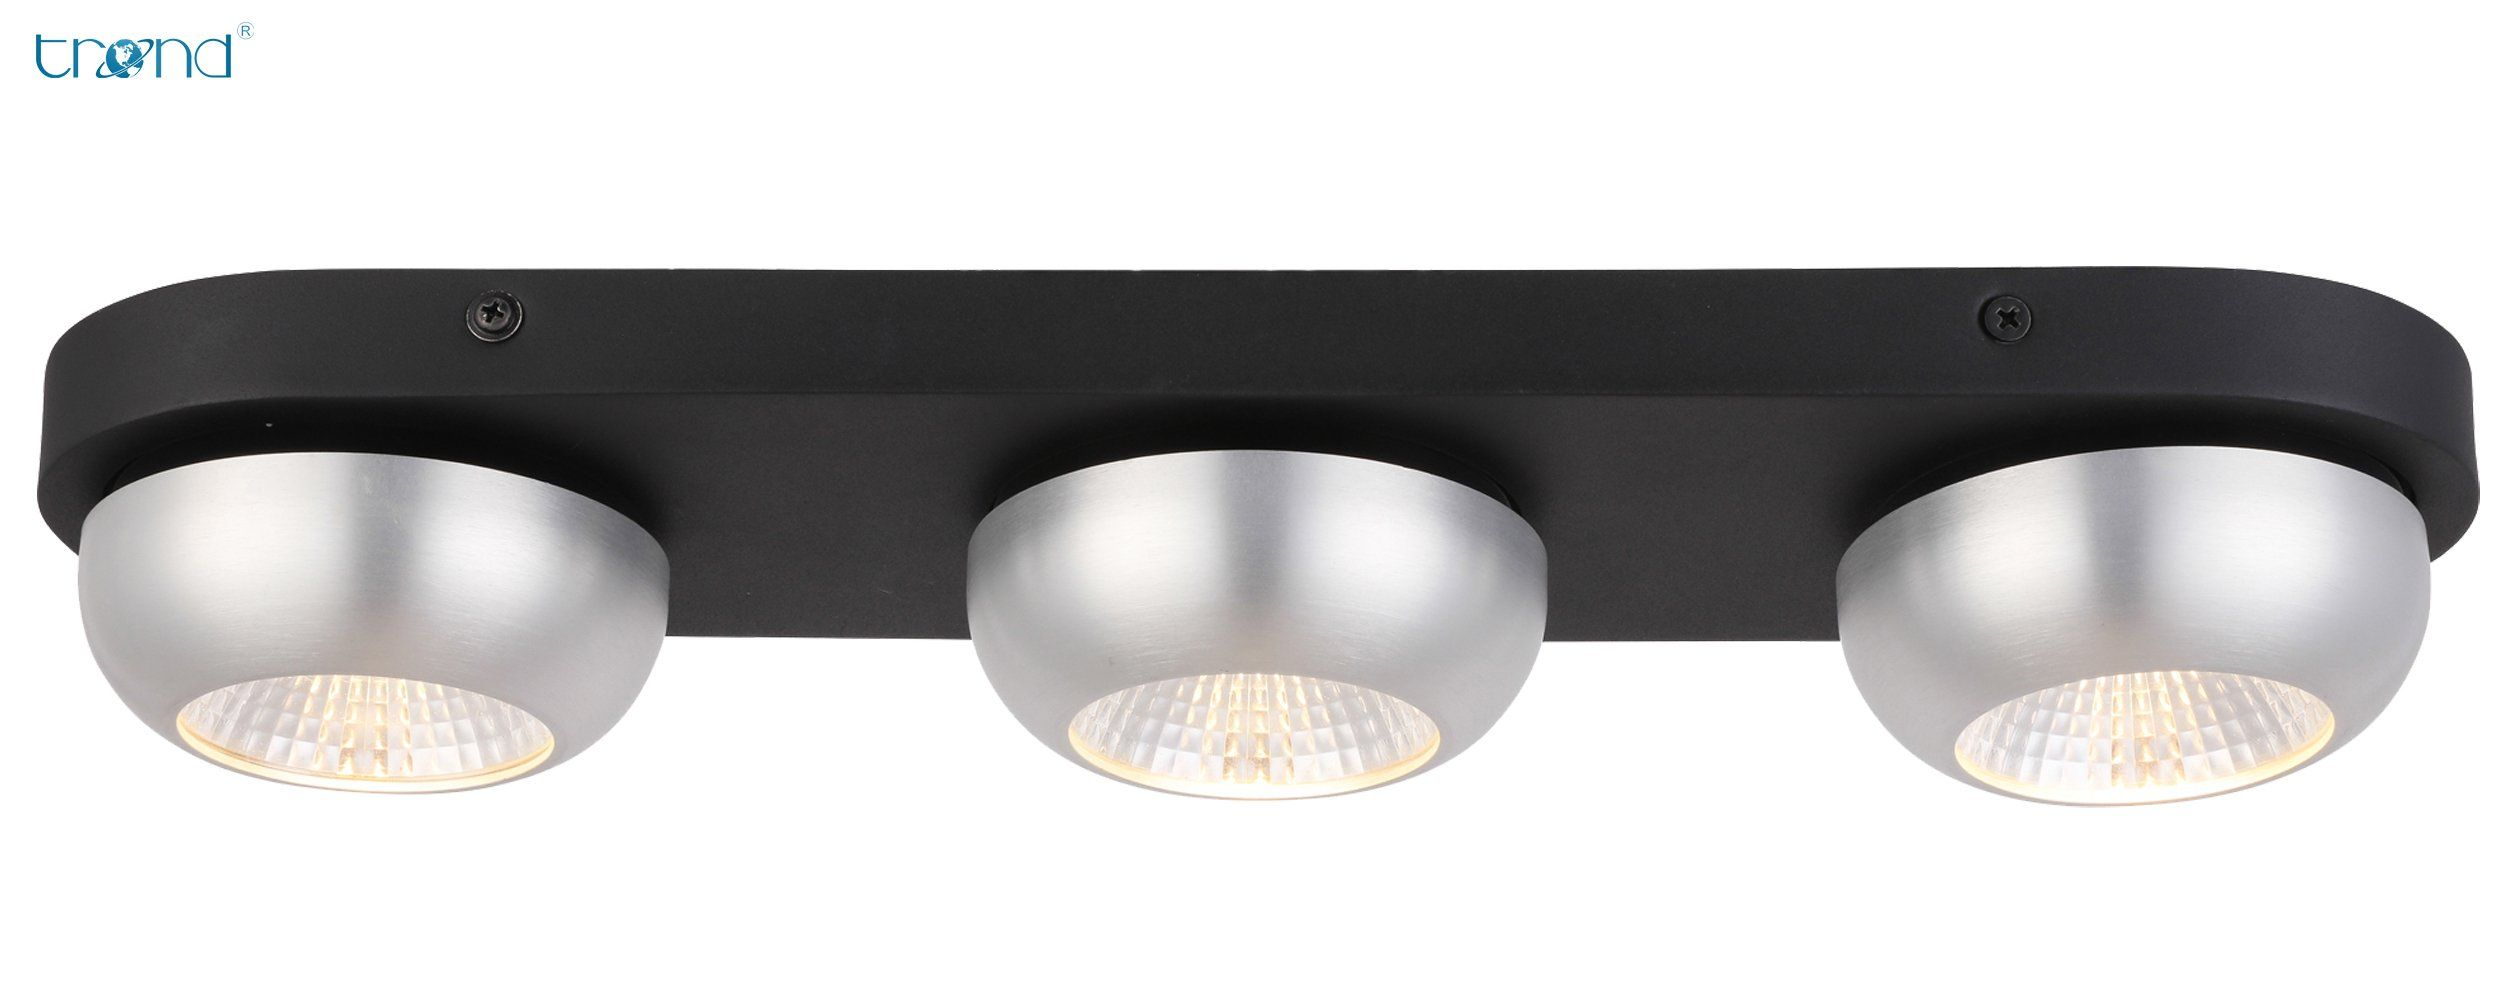 Trend Lighting Led Ceiling Light Flush Mount Track Spot Wall Light With Cree Chip 10w Dimmable For P Ceiling Lights Flush Mount Ceiling Lights Kitchen Pictures